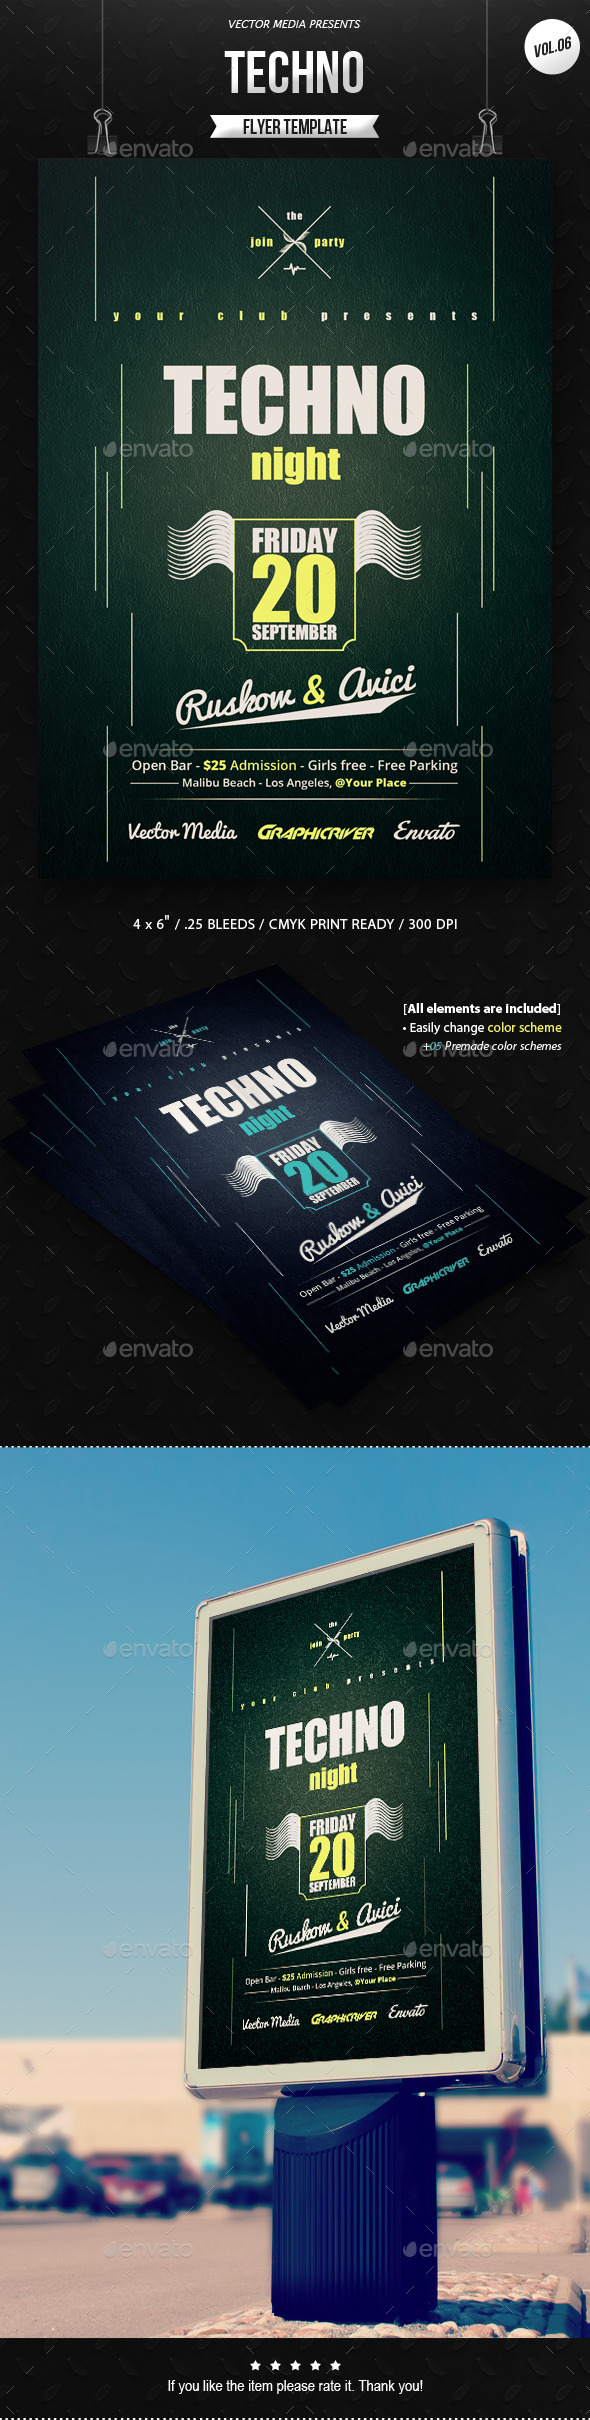 Techno - Flyer [Vol.6] - Clubs & Parties Events